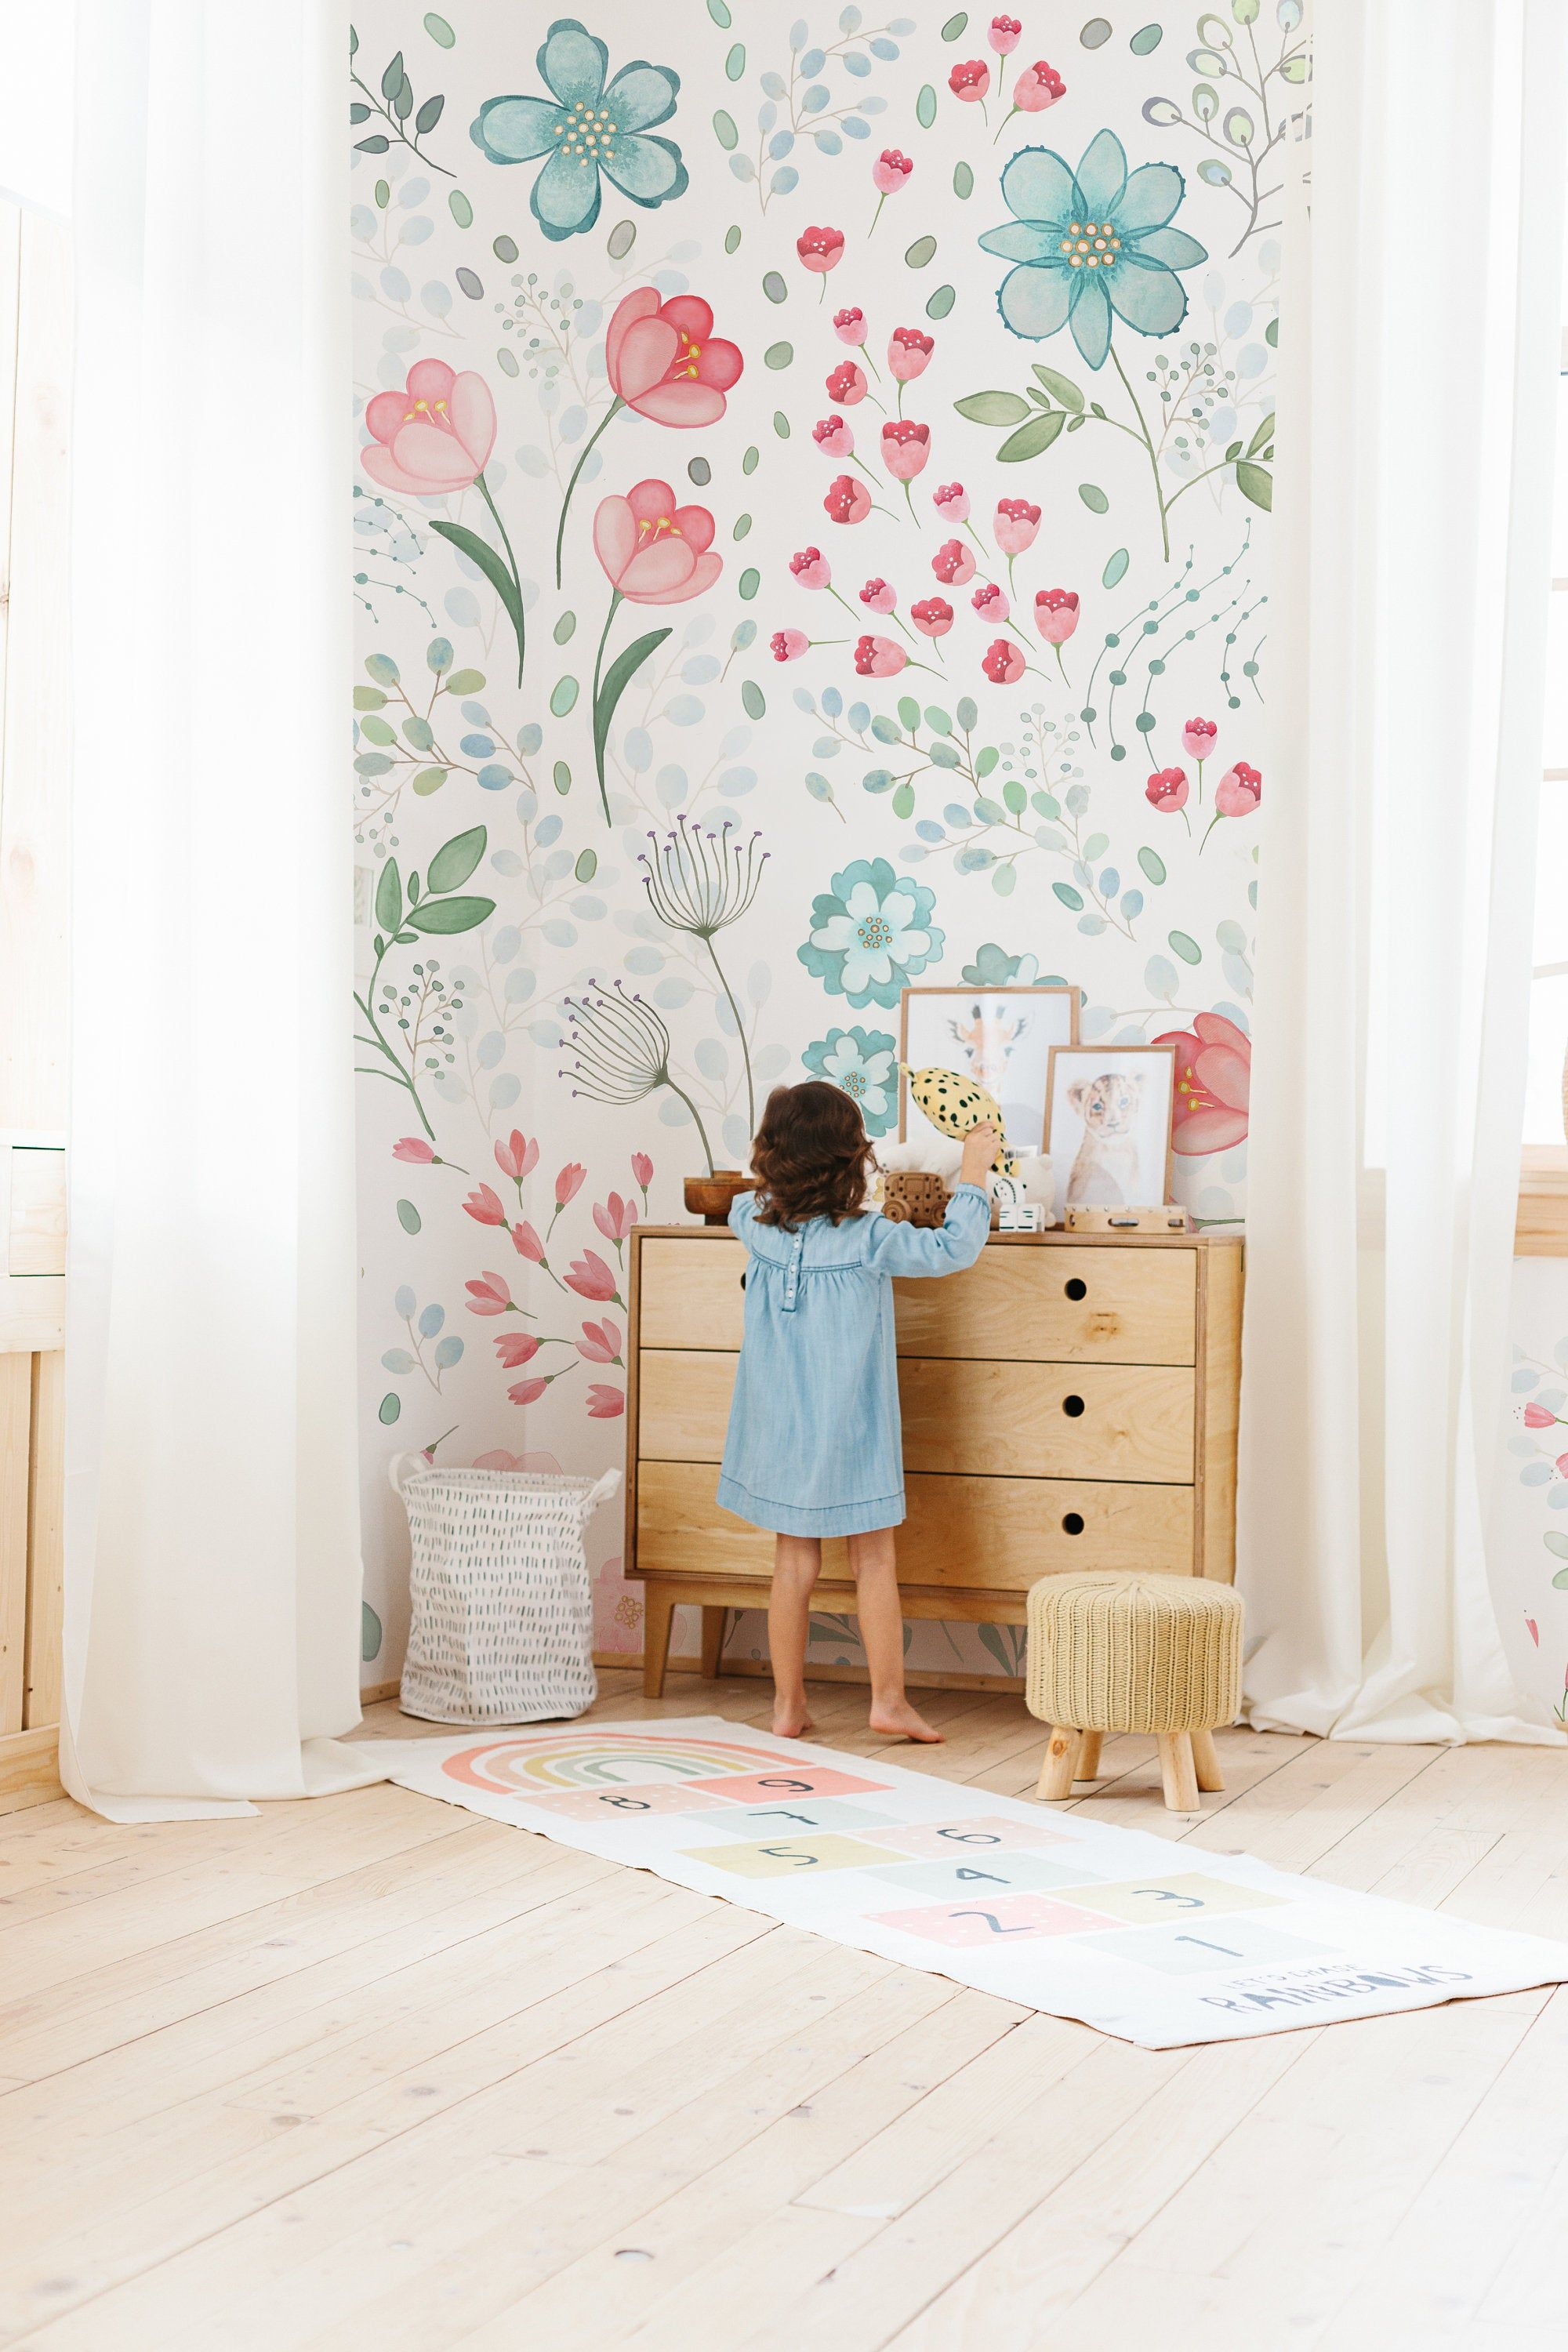 Whimsy Floral Mural Traditional Or Removable Wallpaper Etsy Removable Wallpaper Girl Room Mural